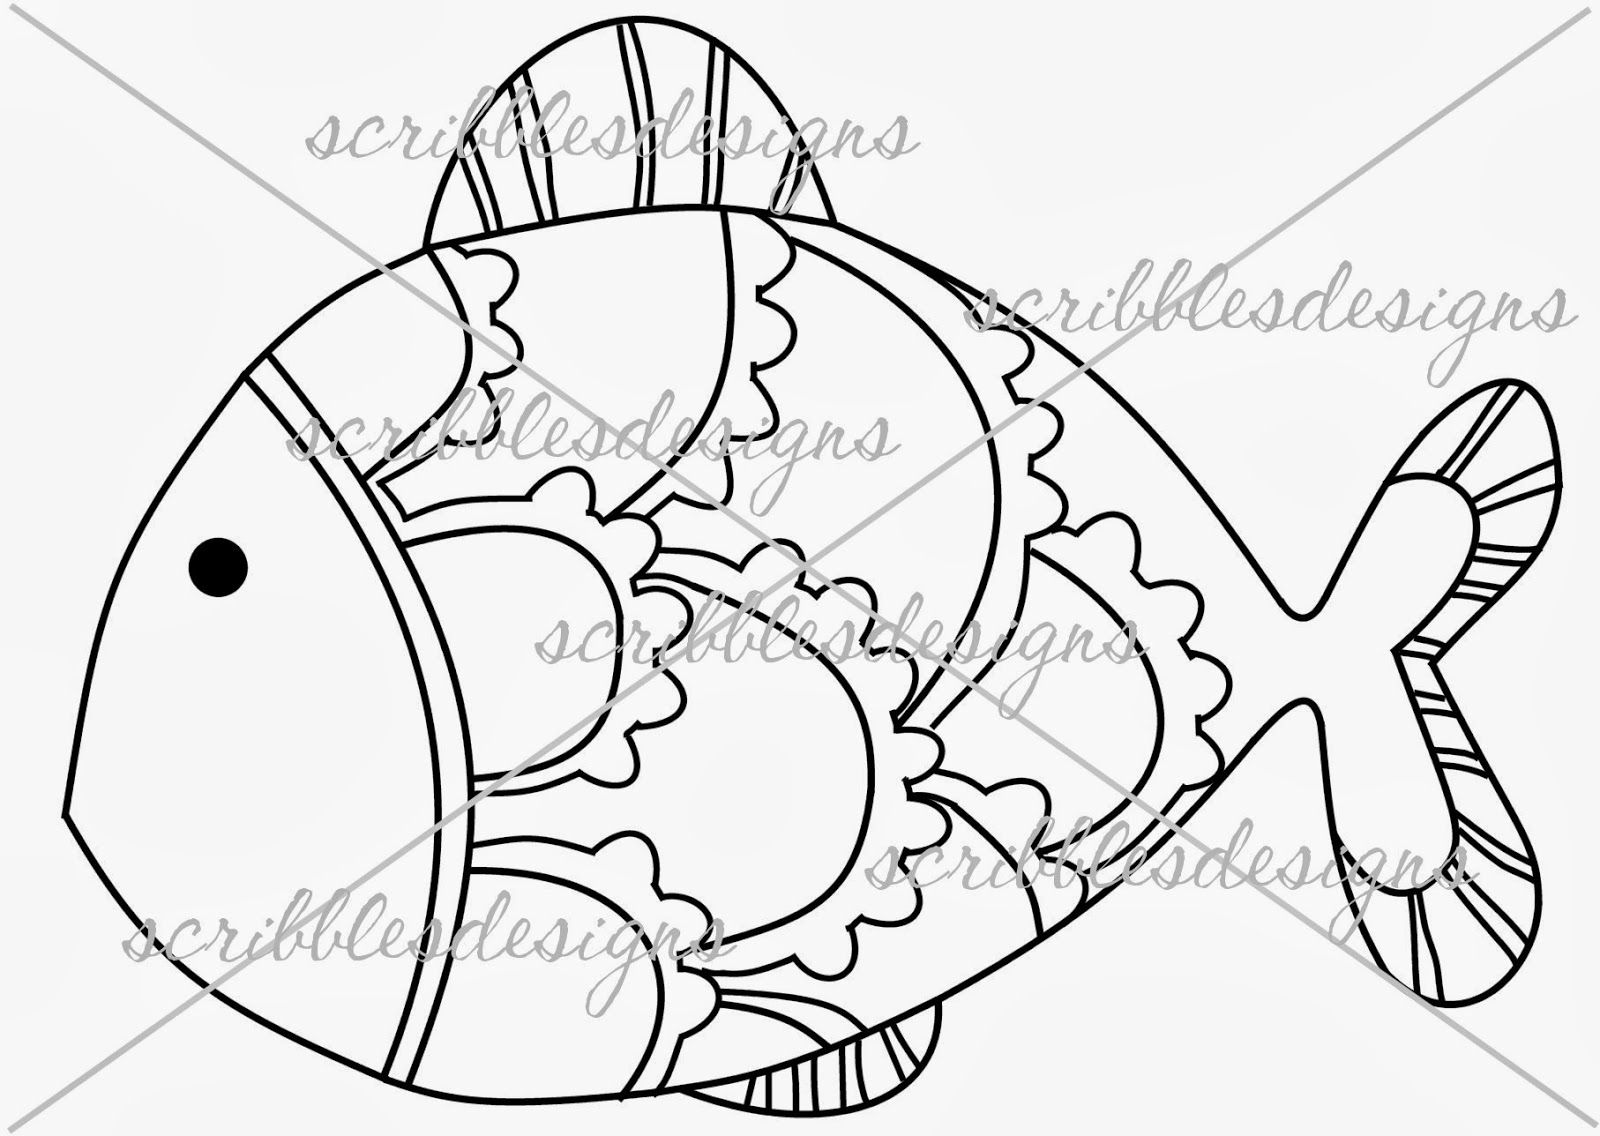 http://buyscribblesdesigns.blogspot.ca/2013/08/316-tropical-fish-5-200.html